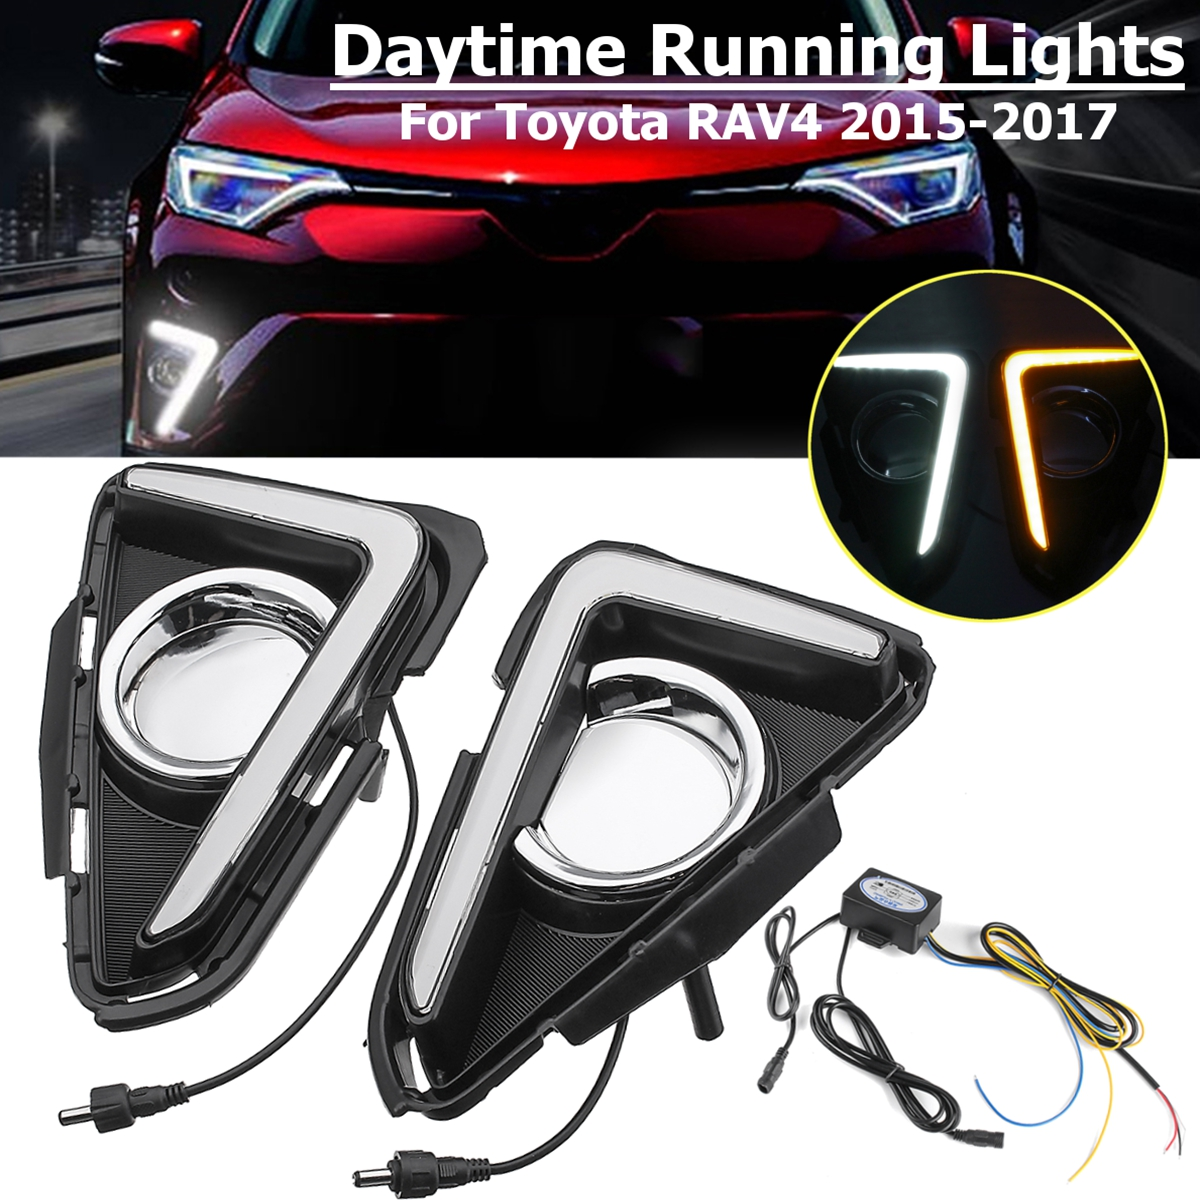 For Toyota RAV4 2016 2017 1 Pair LED Daytime Running Light Yellow Turning Signal Waterproof ABS 12V Car DRL With Fog Lamp Hole for ford everest 2016 2017 with turning yellow signal relay waterproof car drl 12v led daytime running light led fog lamp sncn